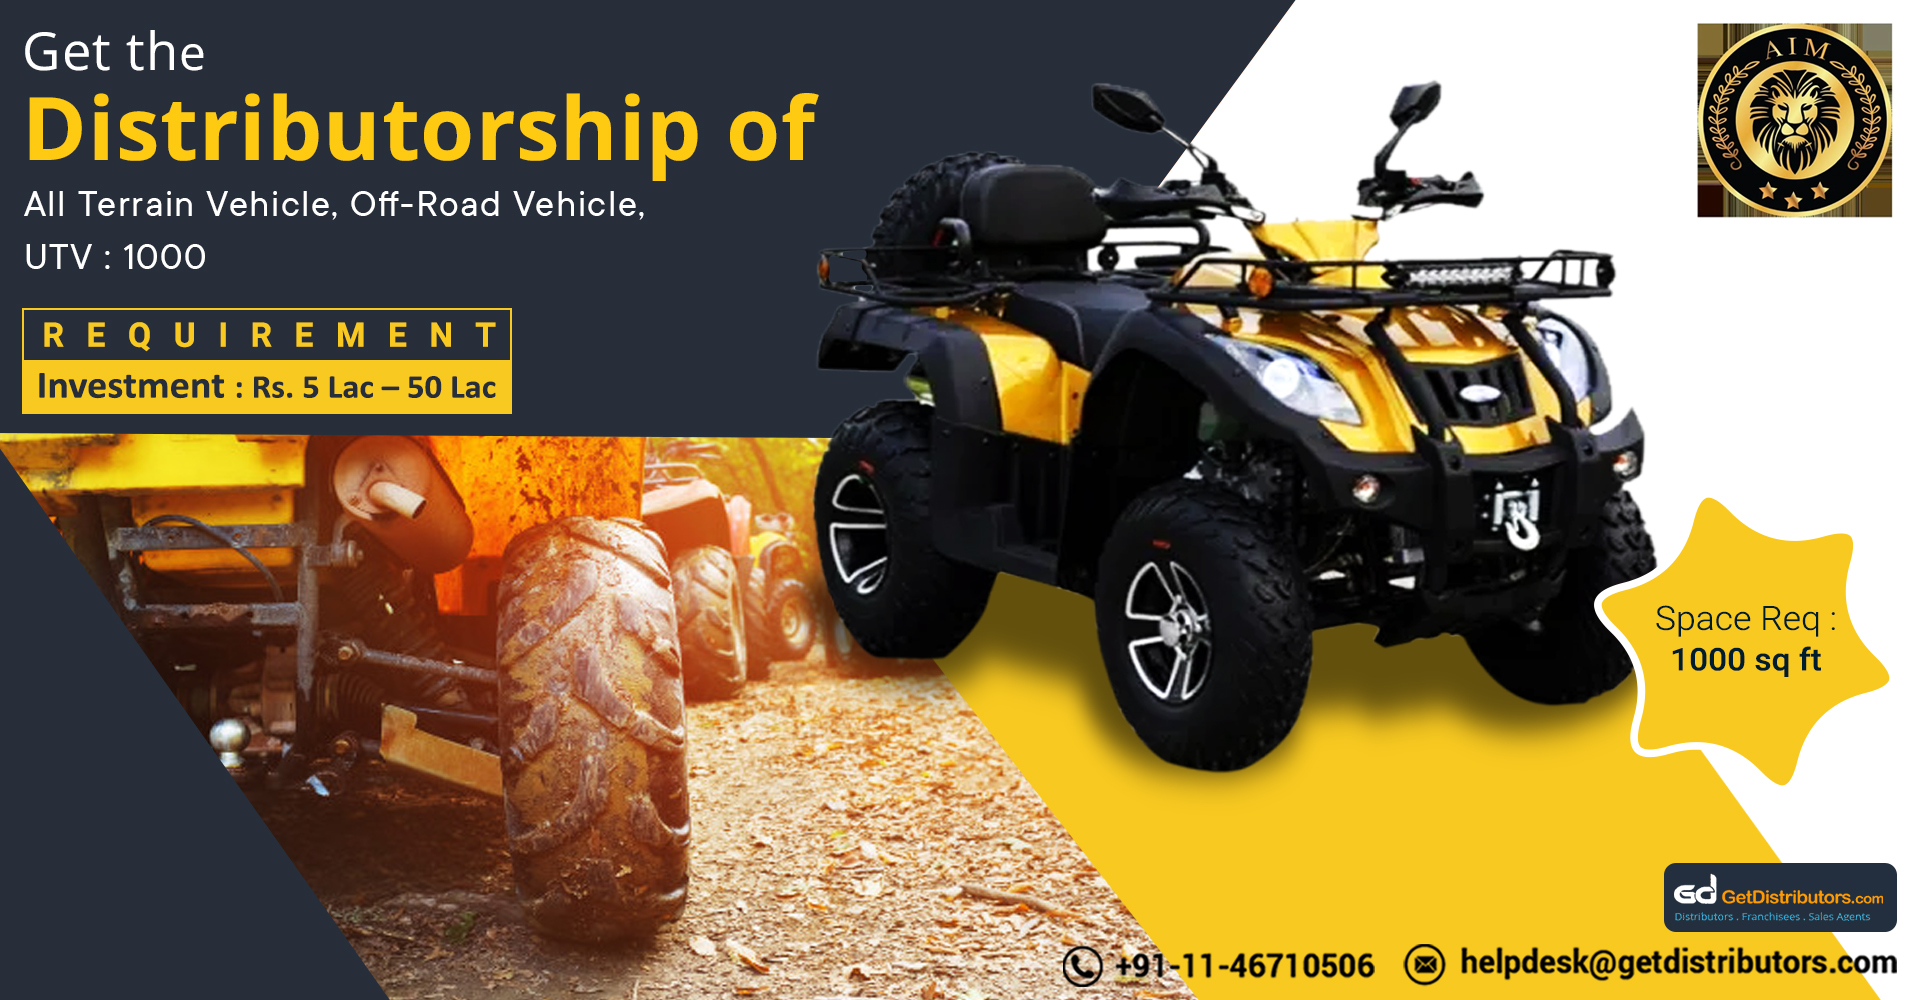 Robust And High Performing All-Terrain Vehicles, Utility Task Vehicle, And Off-Road Vehicle